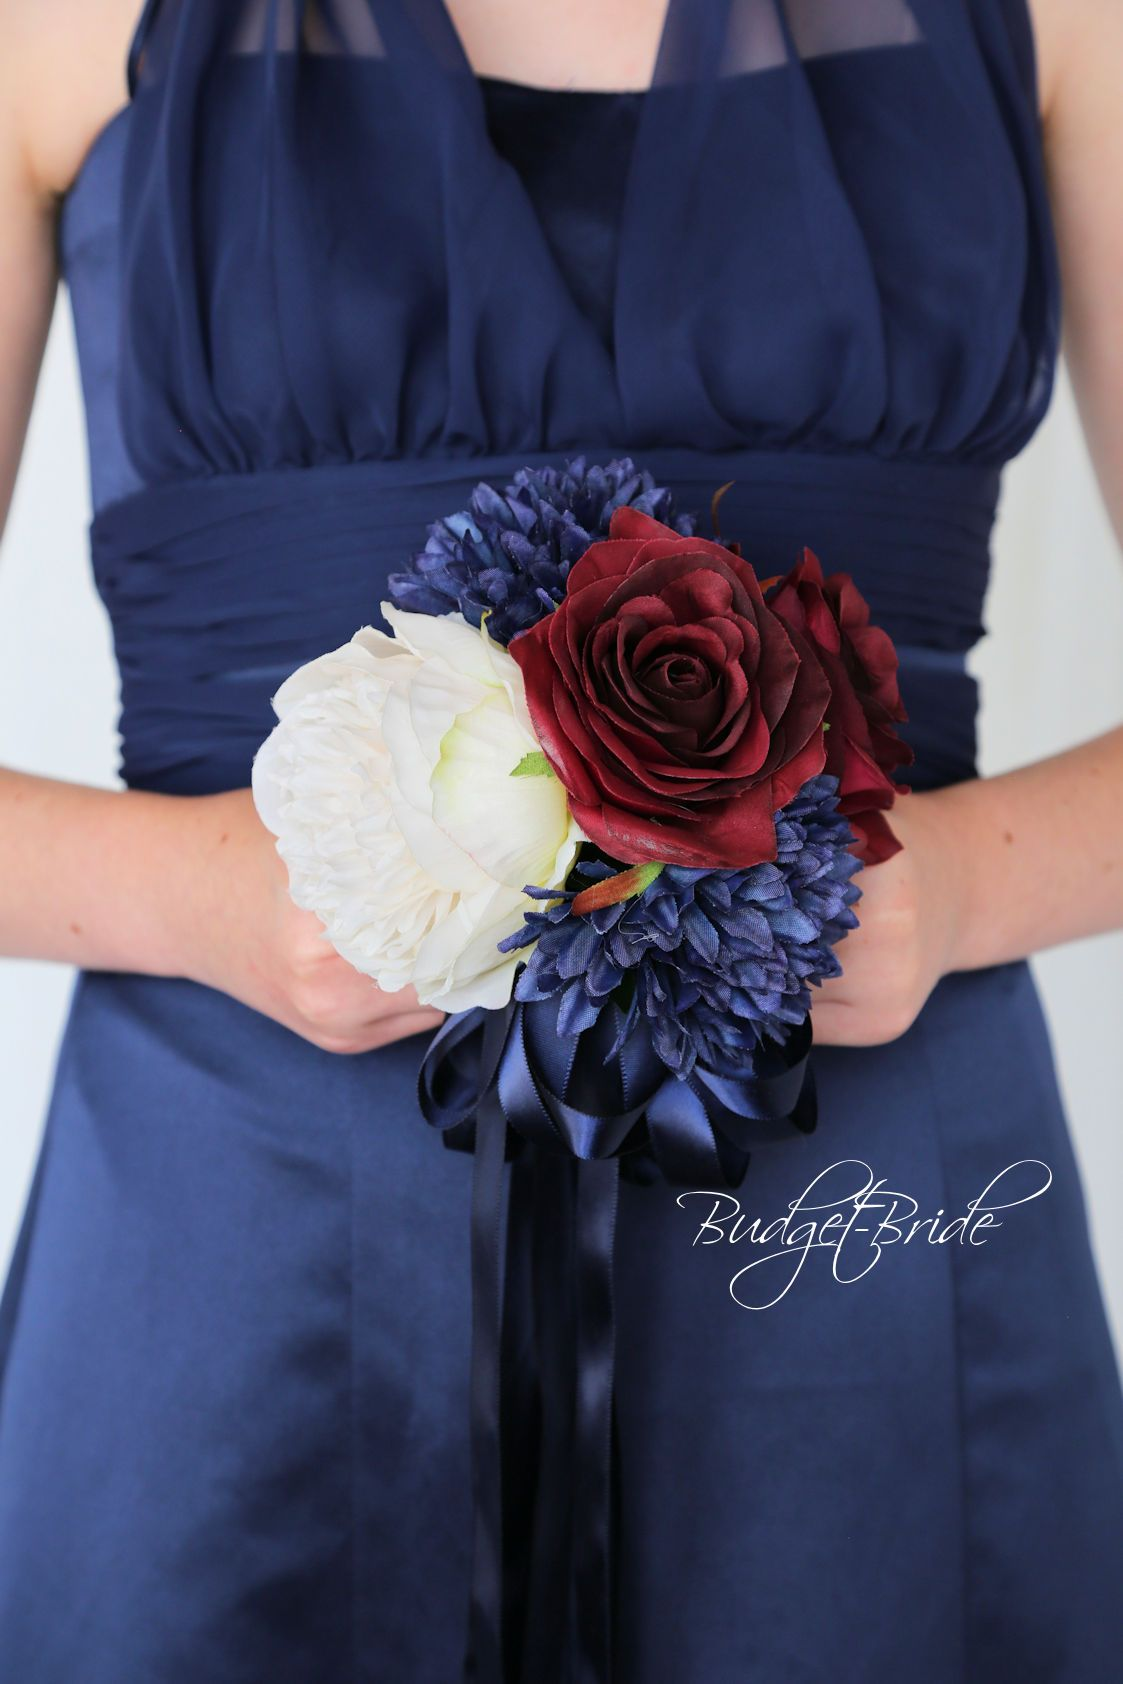 Davids bridal marine blue apple red and ivory wedding bouquet with